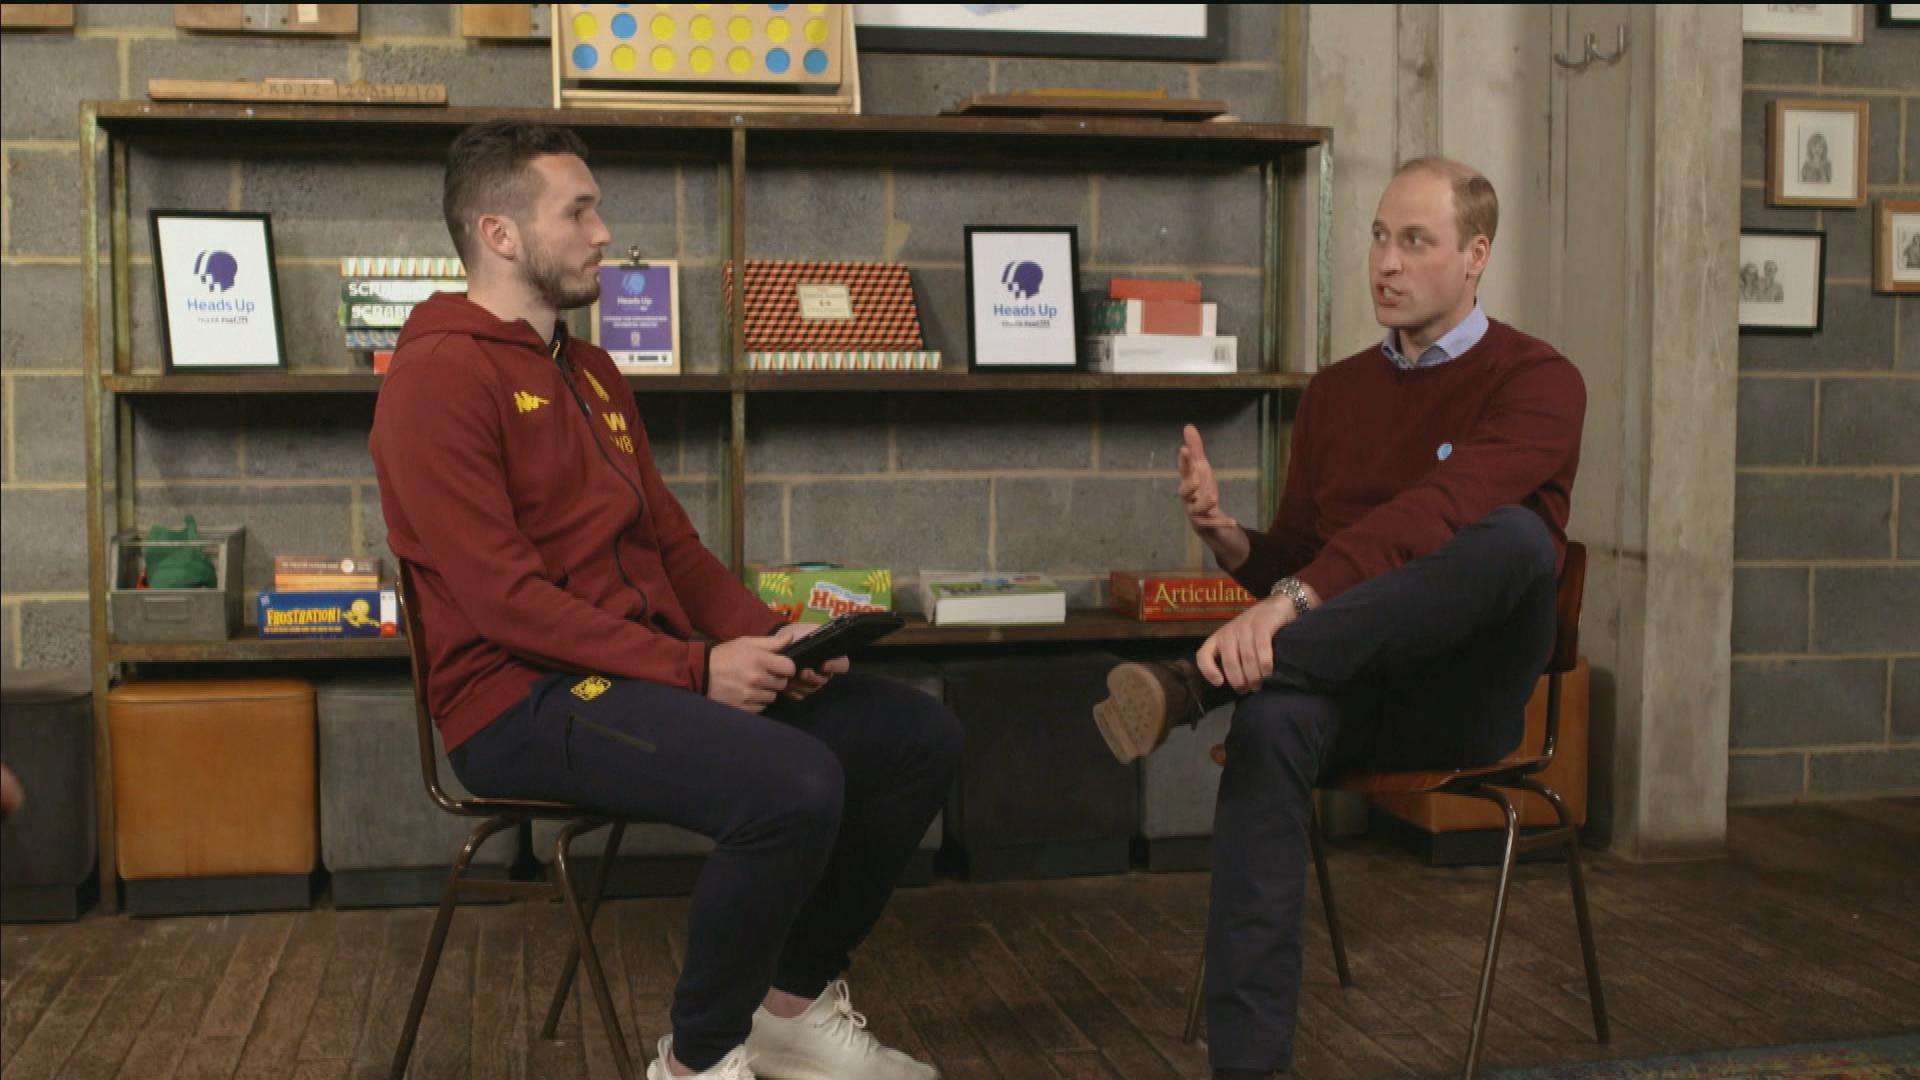 John McGinn interviews Prince William, Duke of Cambridge